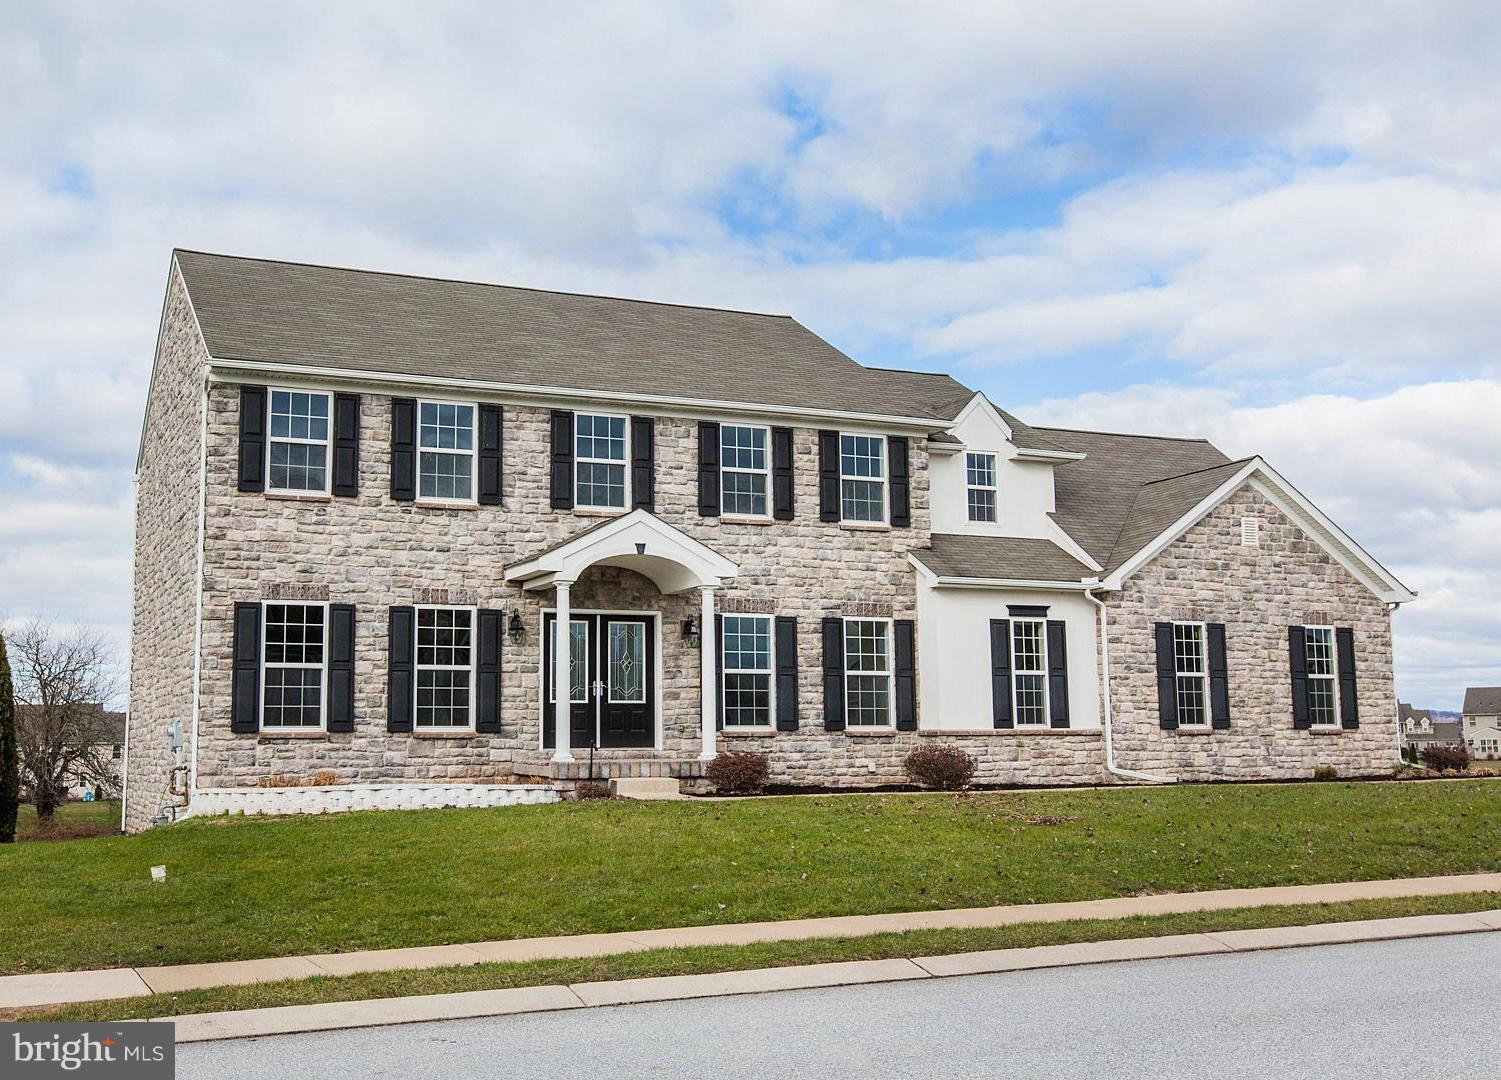 1231 AYLESBURY LANE, YORK, PA 17404